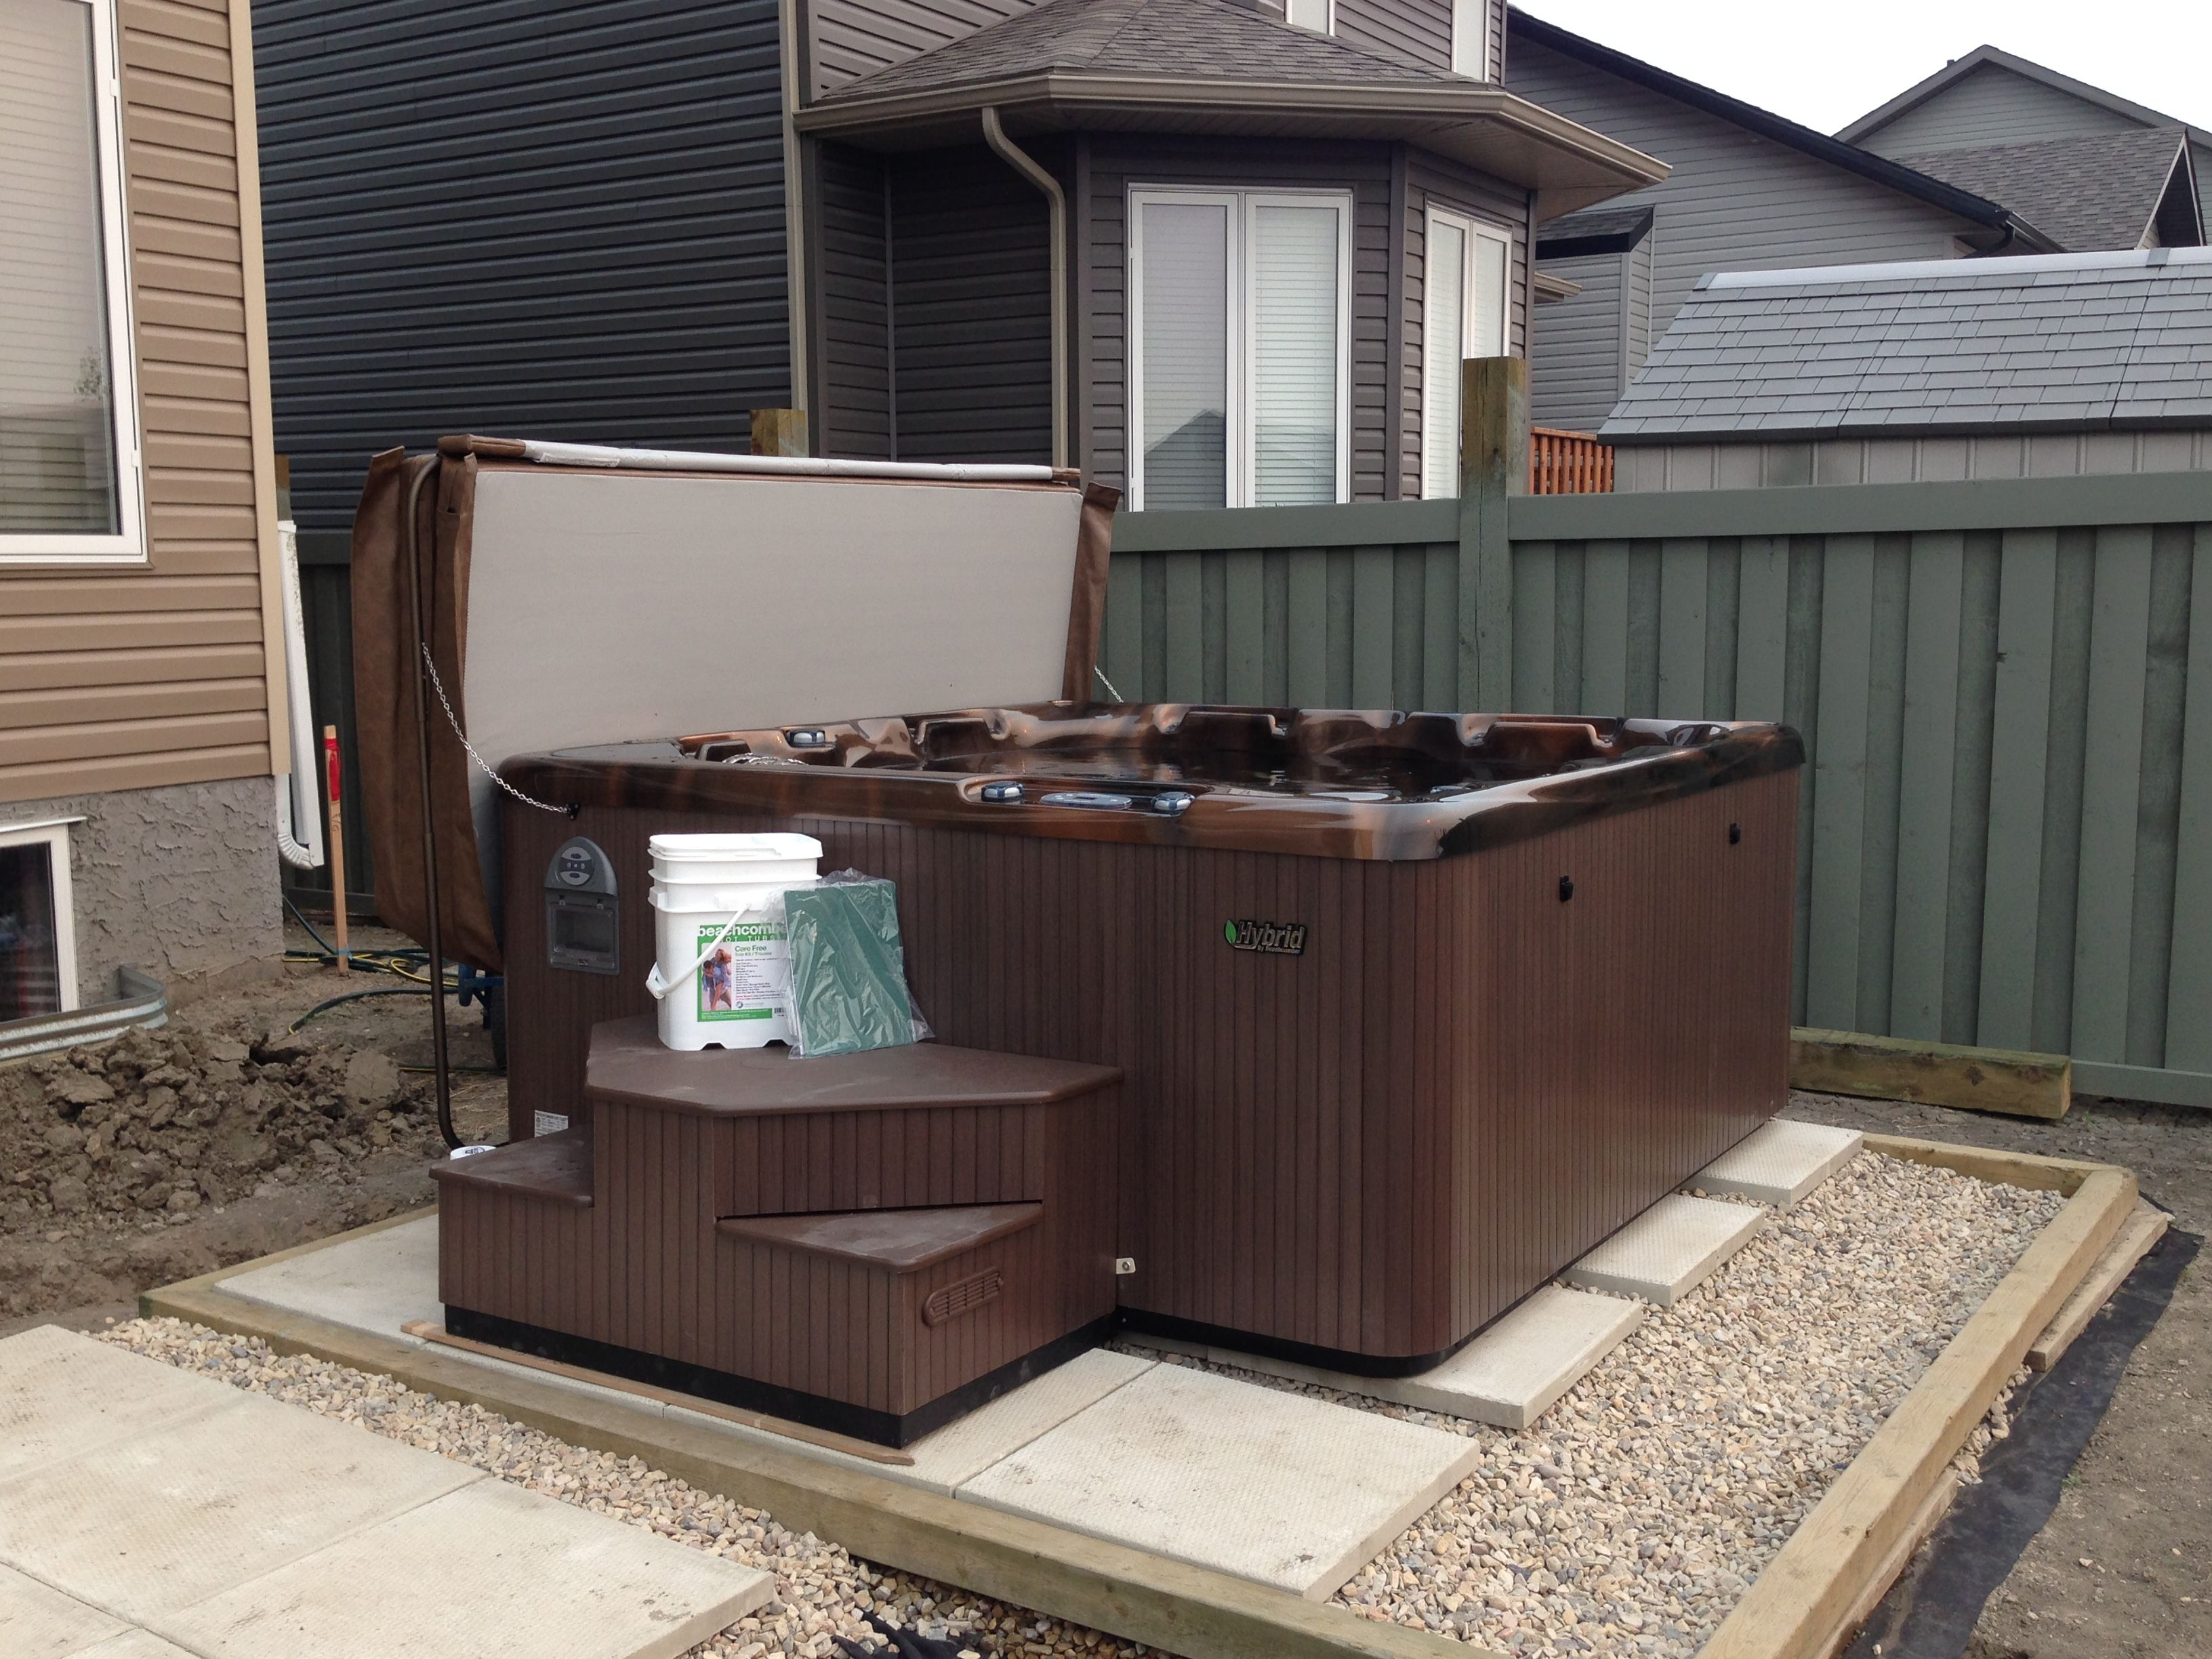 medium resolution of beachcomber model 580 install hot tub patio whistler spas backyard ideas pools